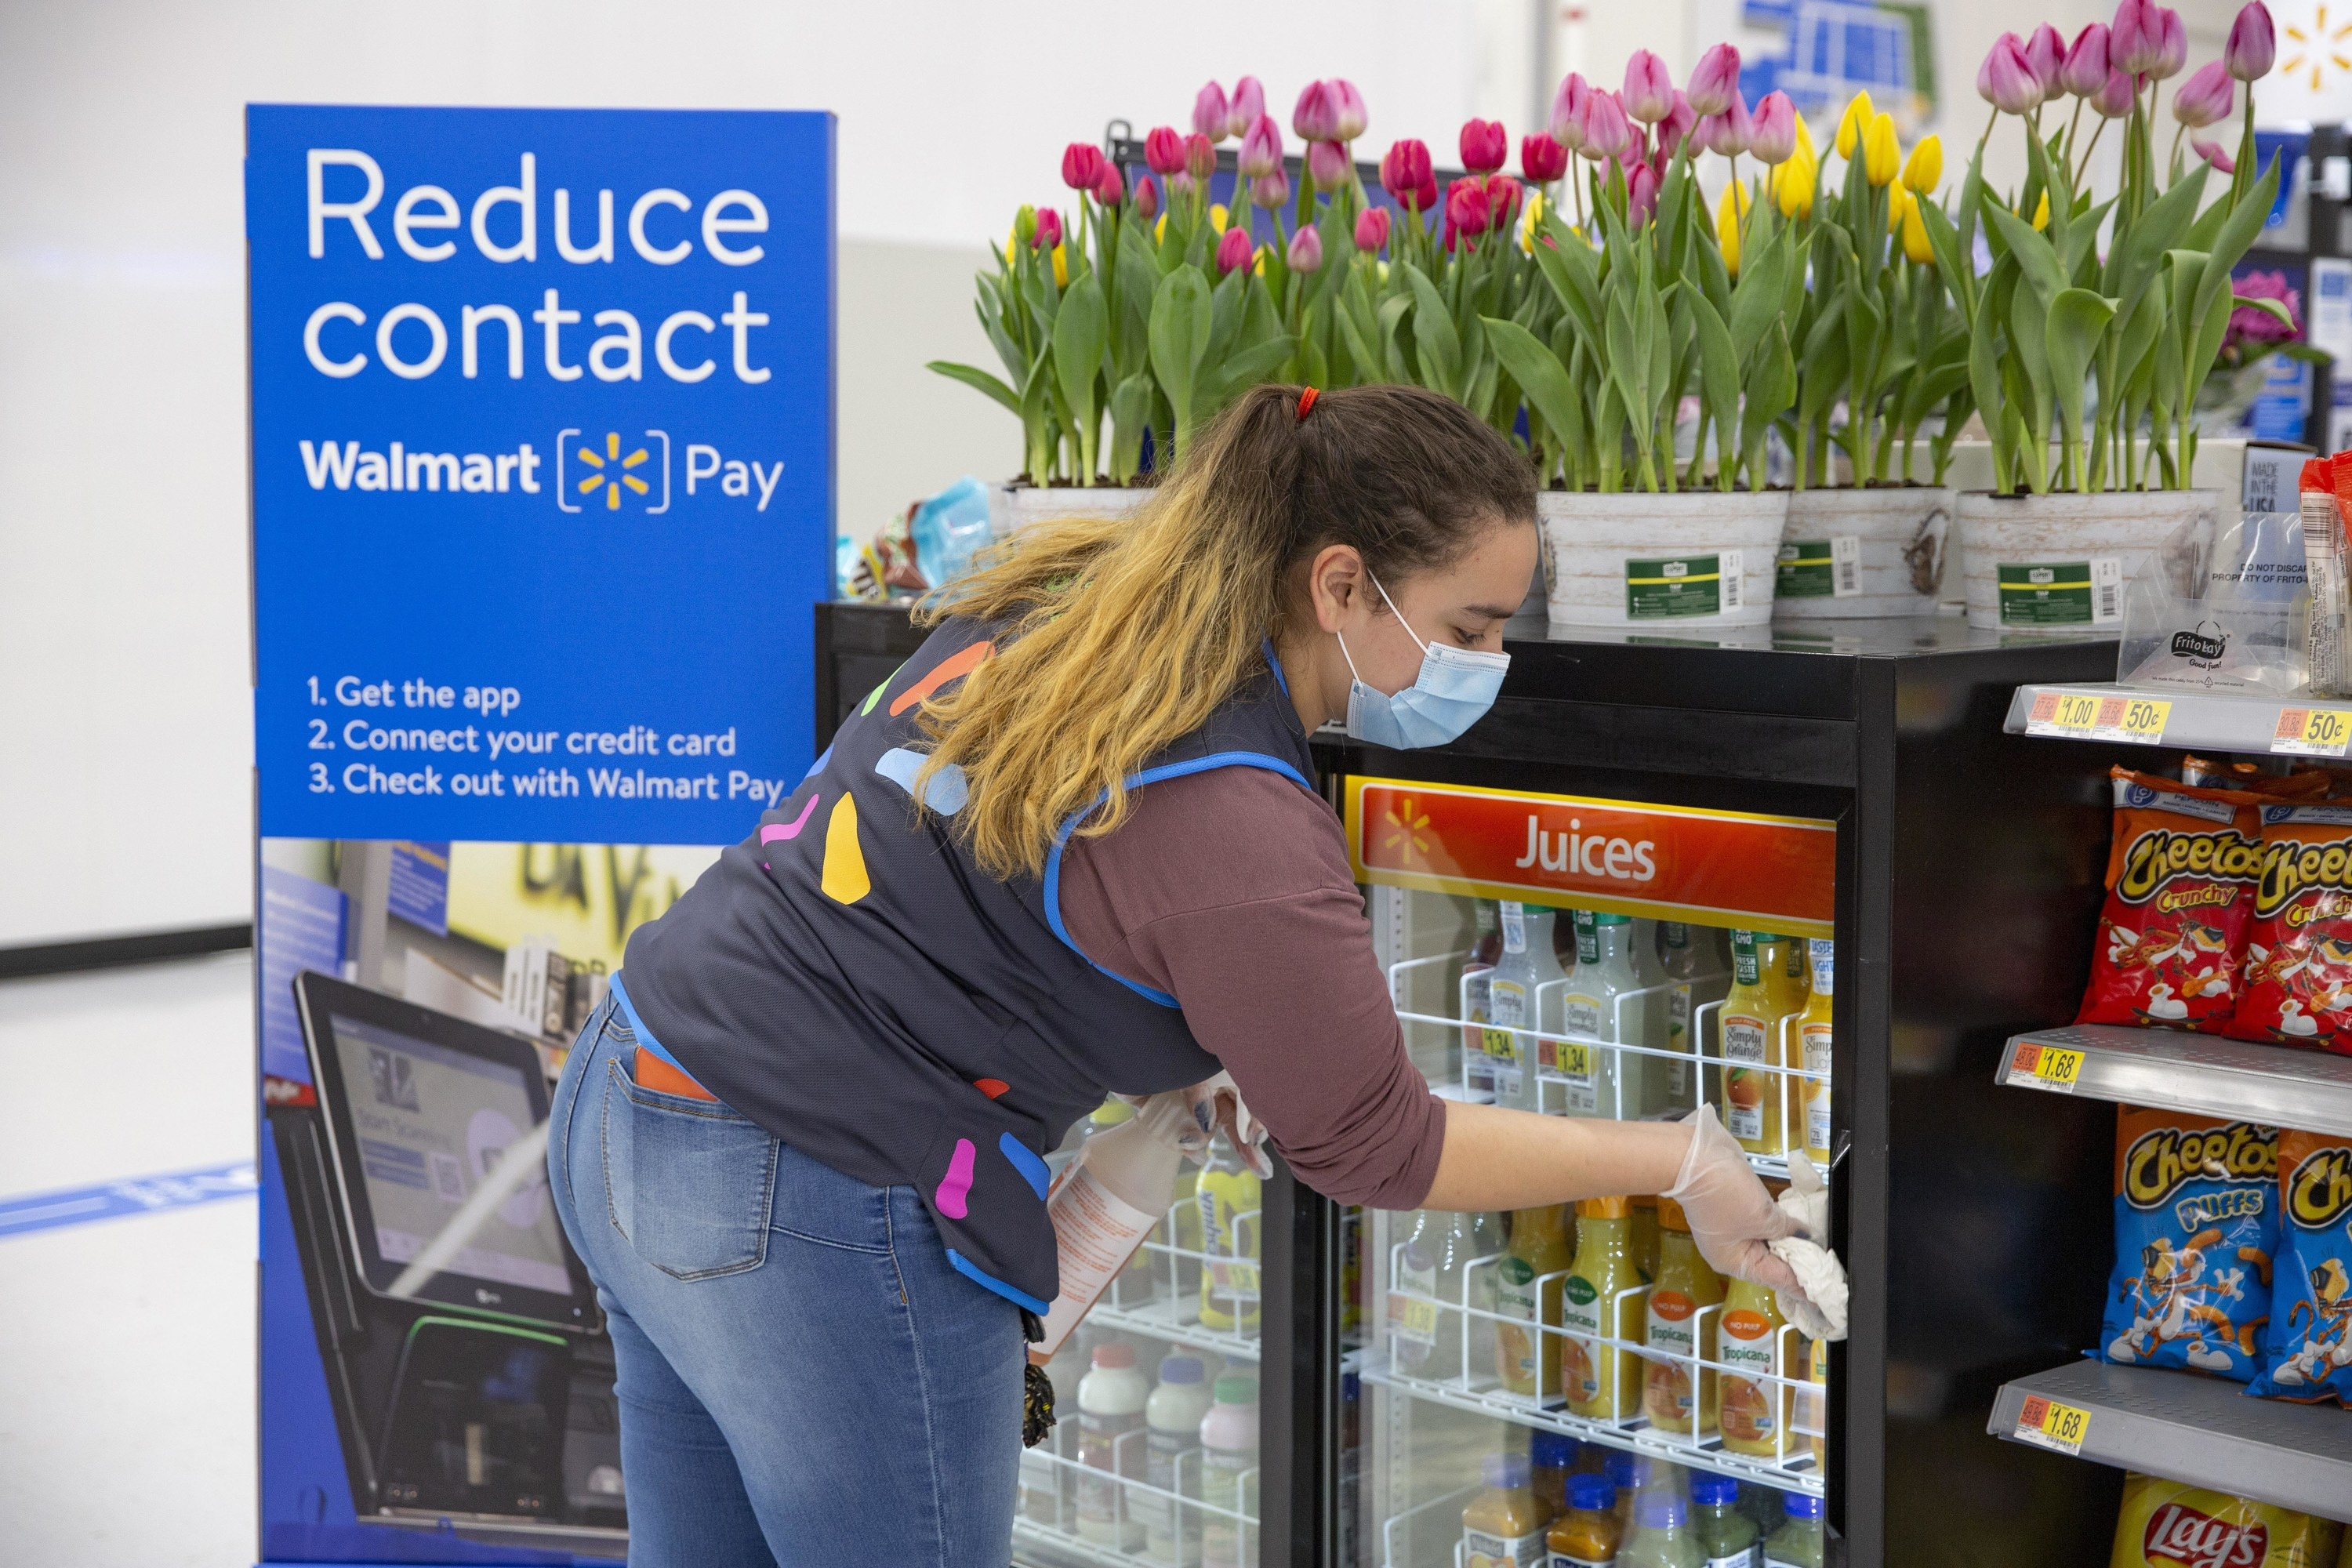 Walmart employee near a cash register and a contacless pay sign